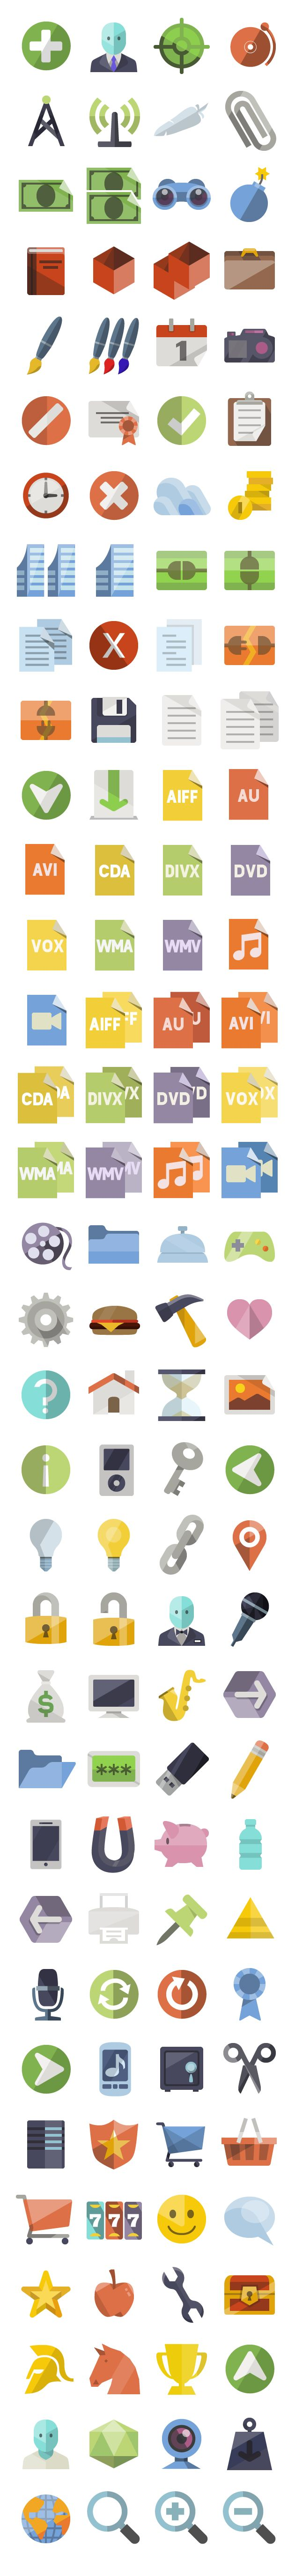 flat icons addons 128px